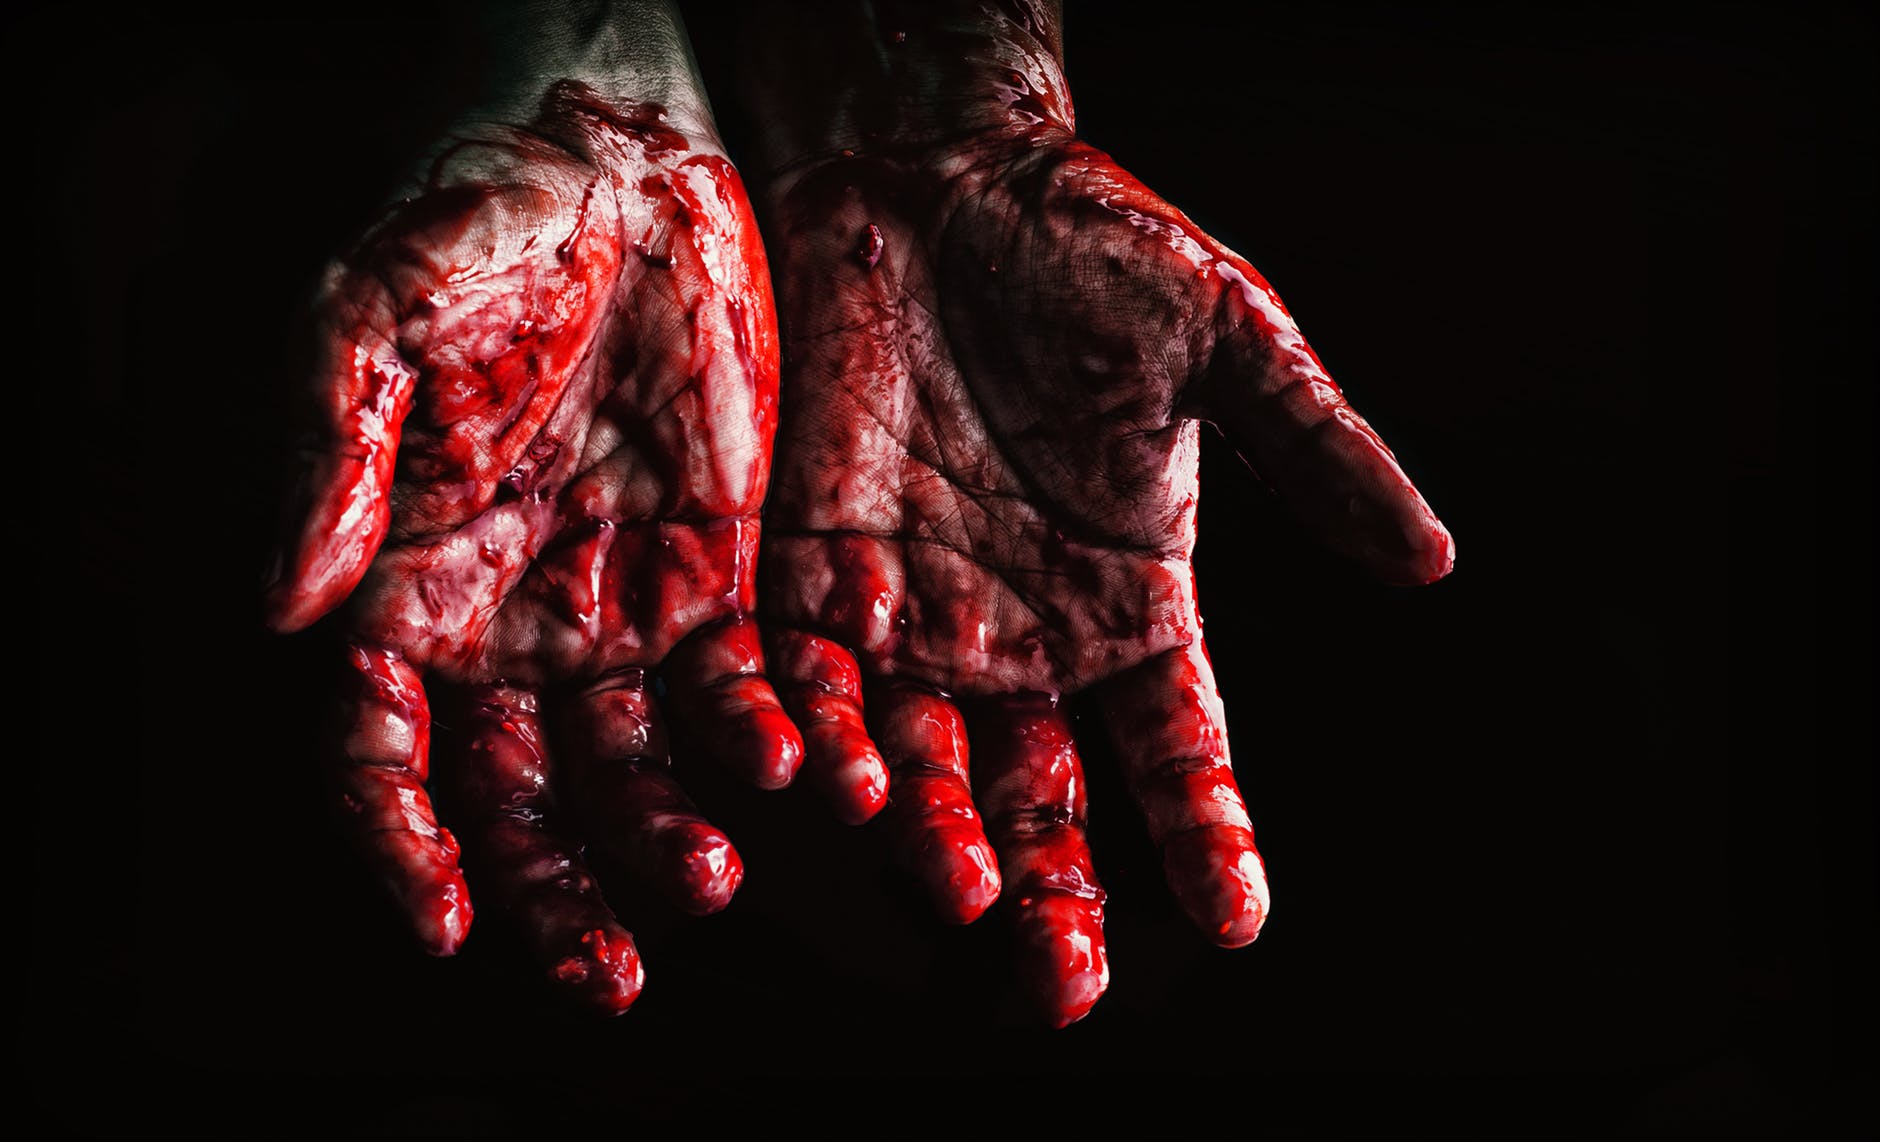 Does Jared Holt Have Blood On His Hands?